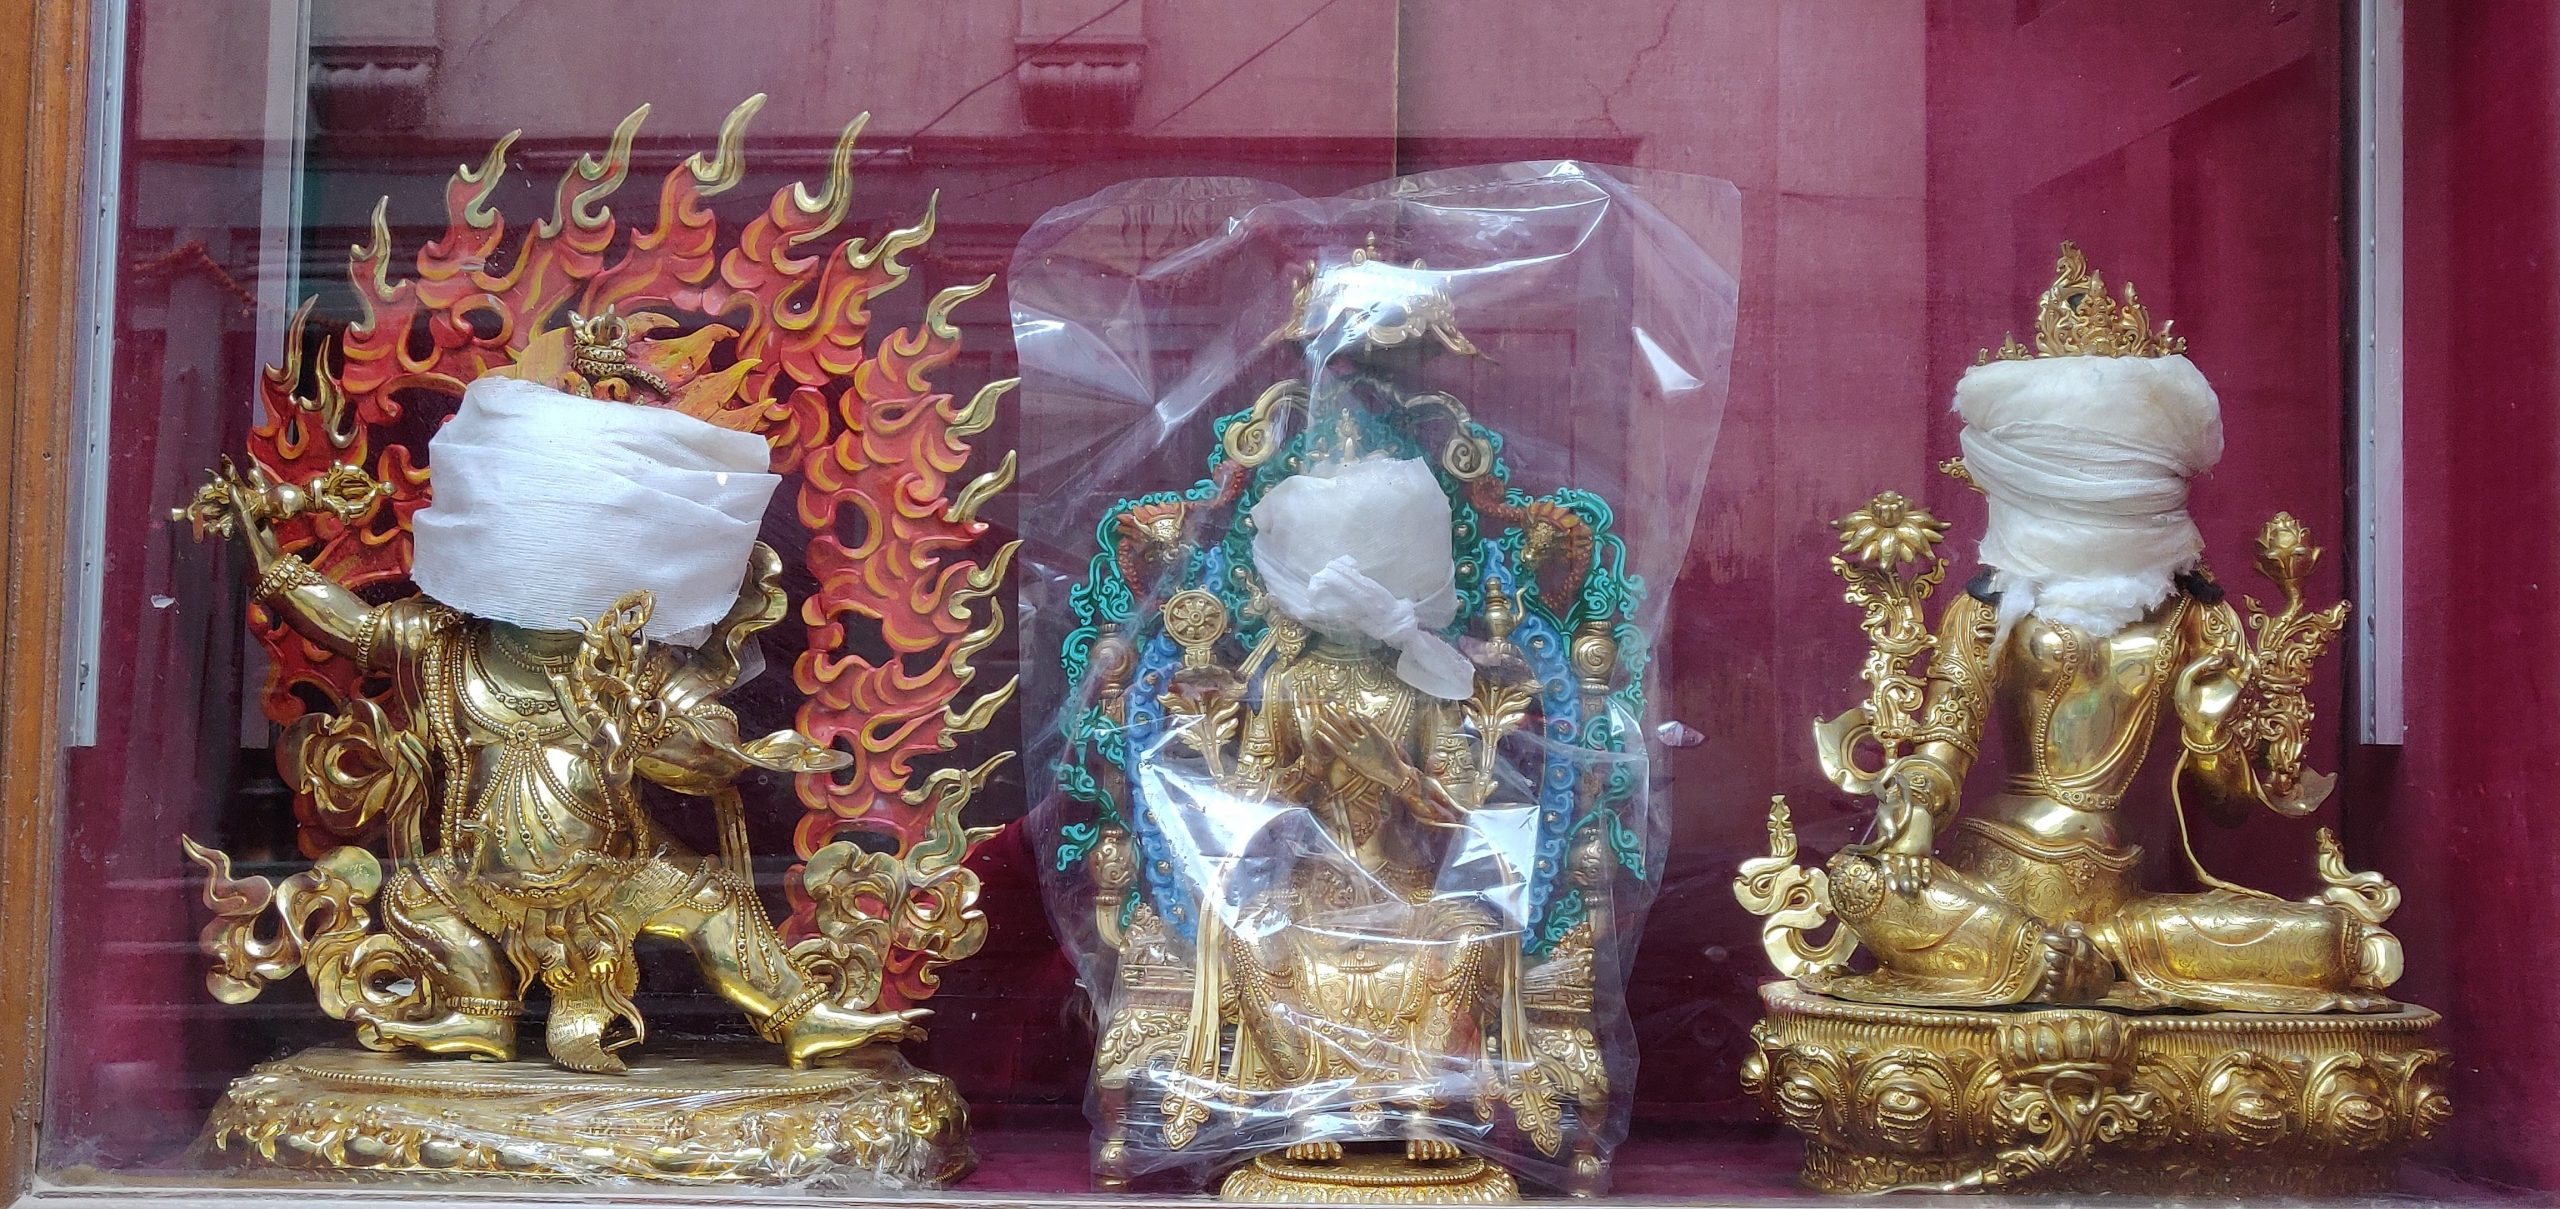 three gold idols with faces wrapped in cloth